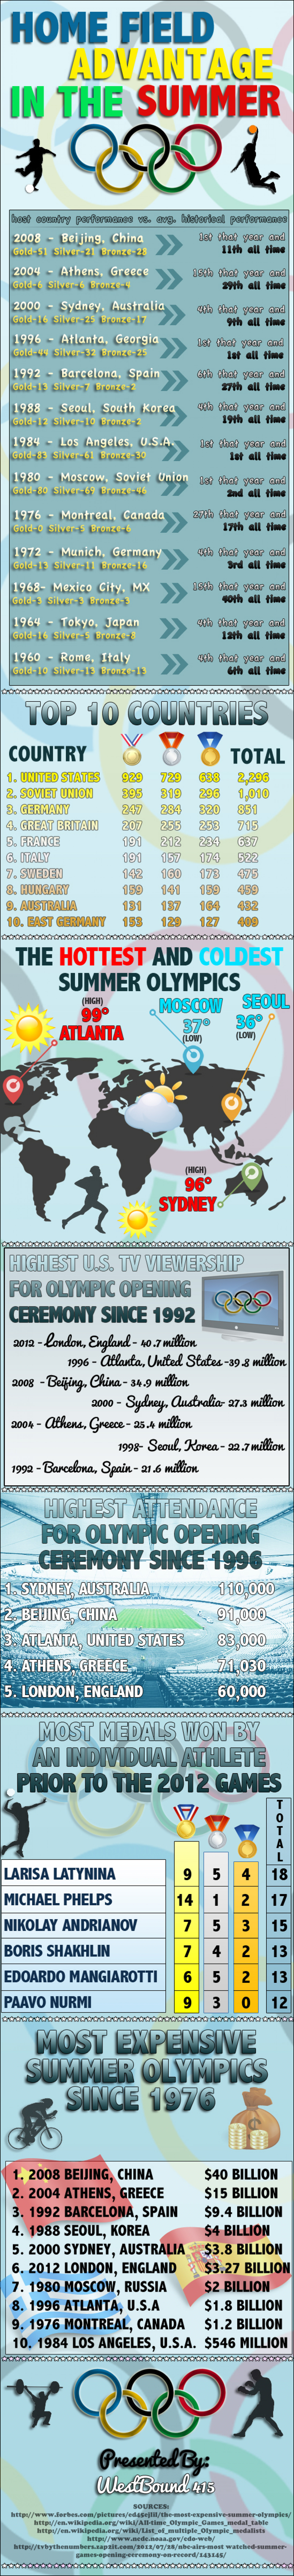 Home Field Advantage In The Summer Olympics Infographic